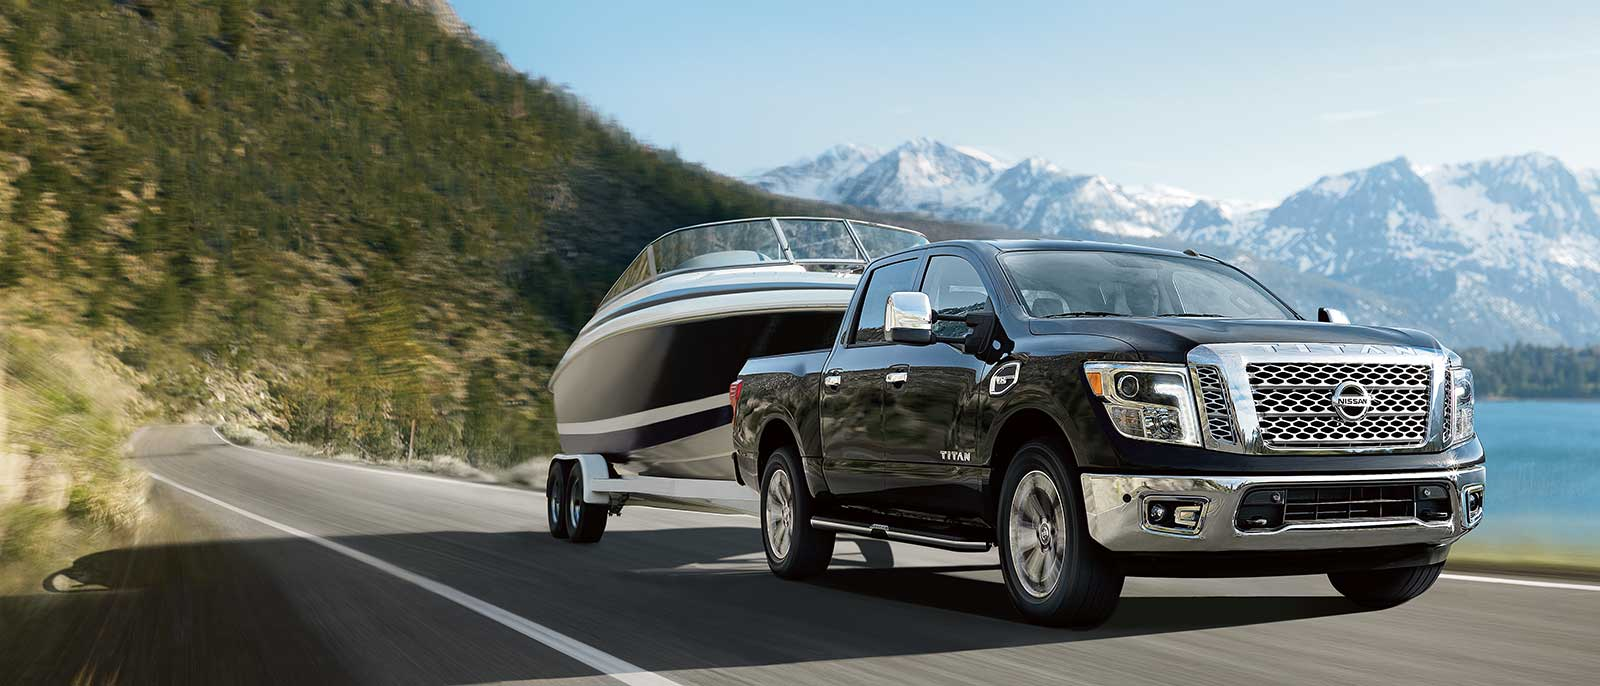 2017 Nissan Titan towing a boat in the mountains